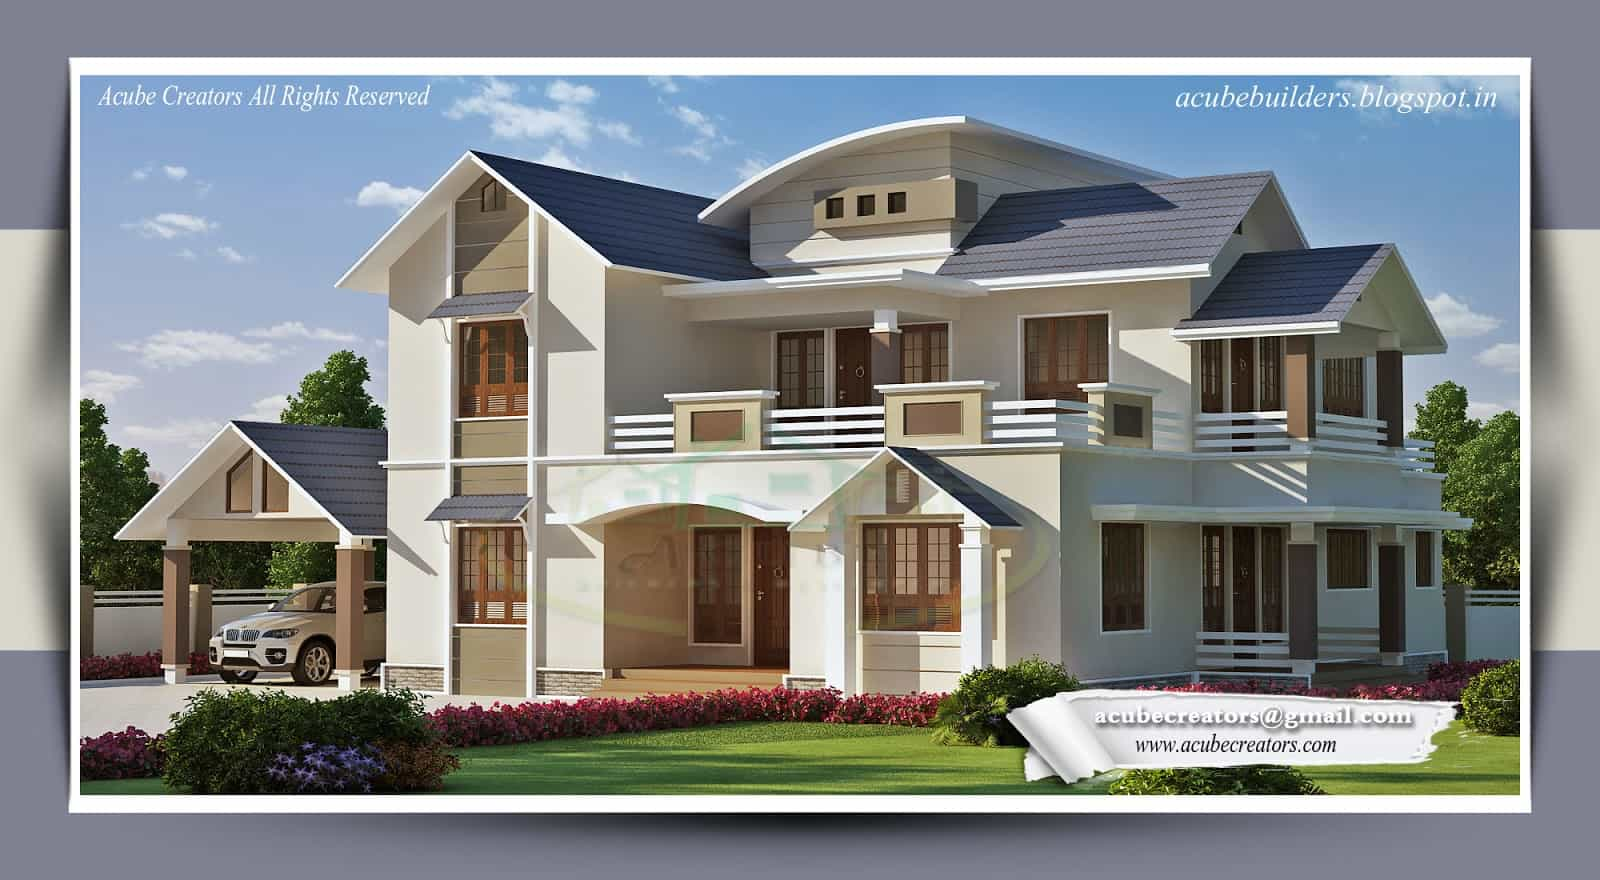 Luxury bungalow house plans images Bungalo house